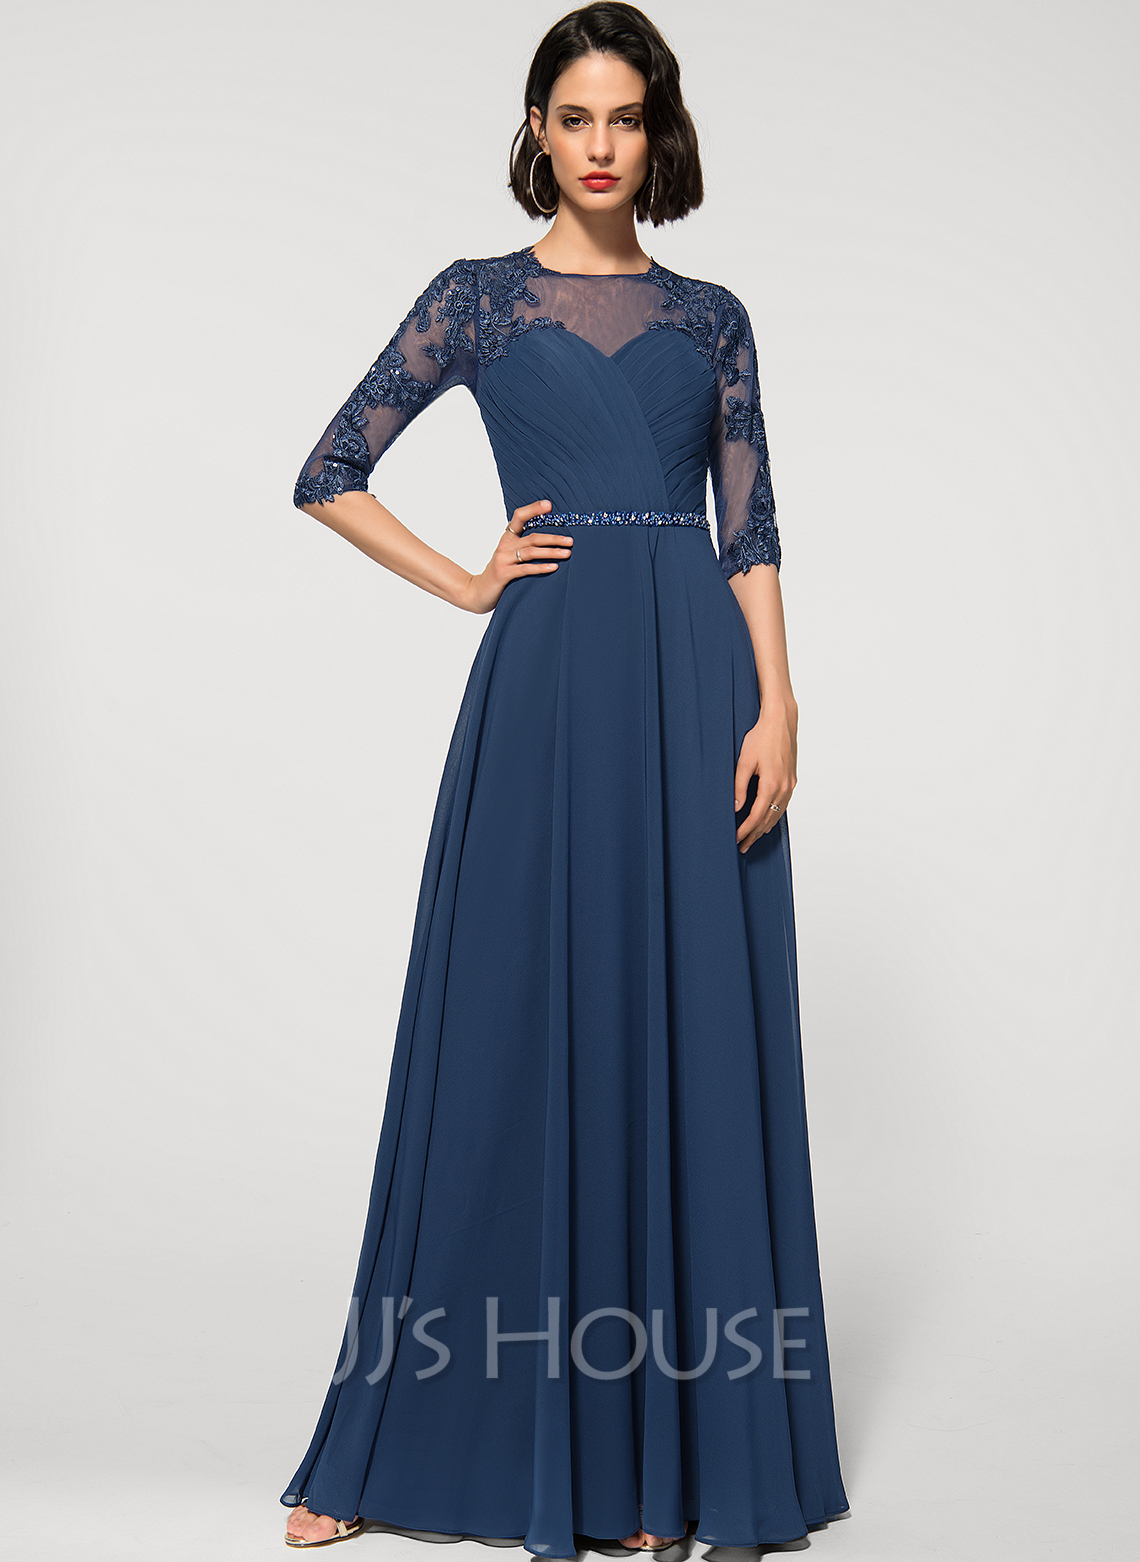 A-Line Scoop Neck Floor-Length Chiffon Lace Evening Dress With Beading